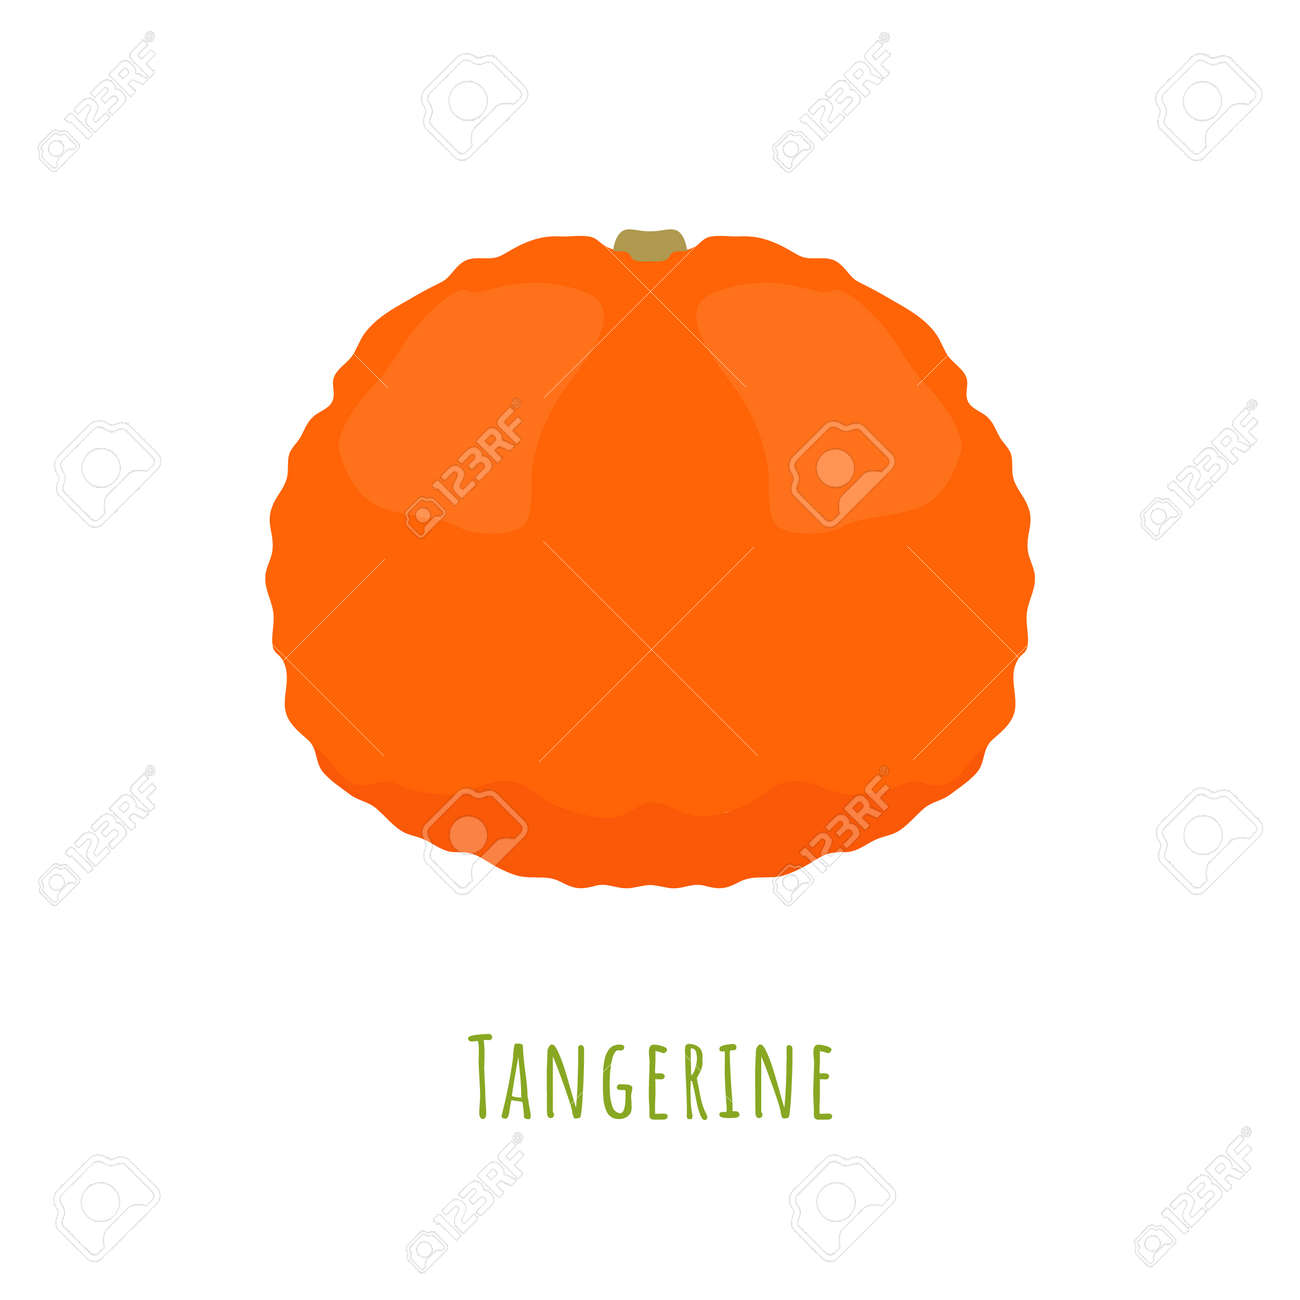 Single one tangerine fruit isolated on white, made in flat style. No outlined Symmetrical shape filled with color only. Colorful vector illustration for product design, web and print usage. - 167248345